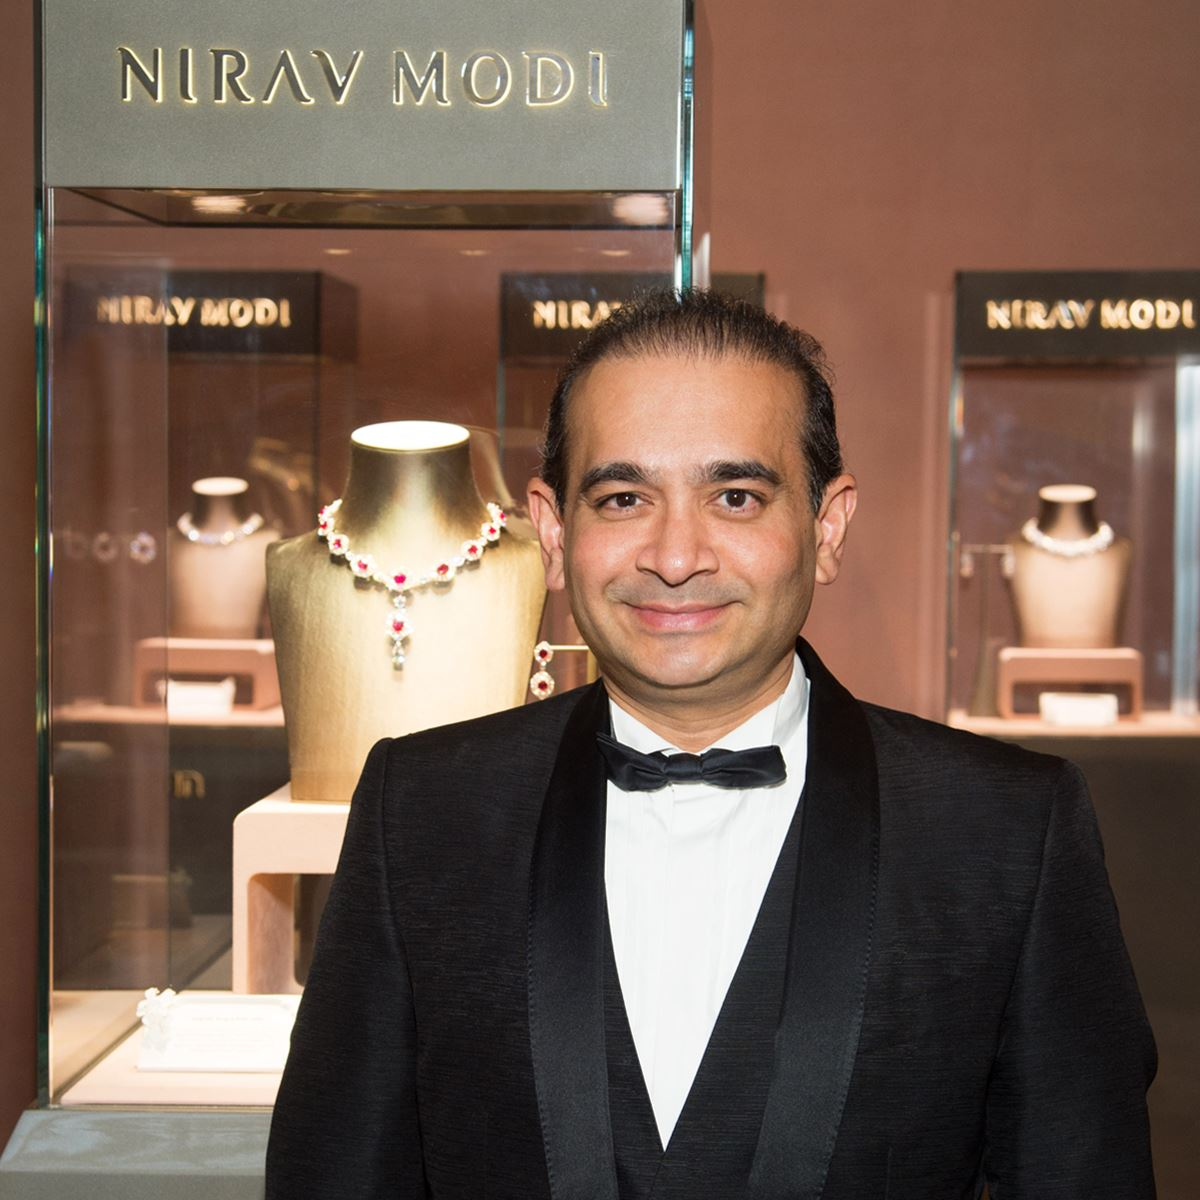 PNB Fraud: ED to Seek Immediate Confiscation of Nirav Modi's Assets